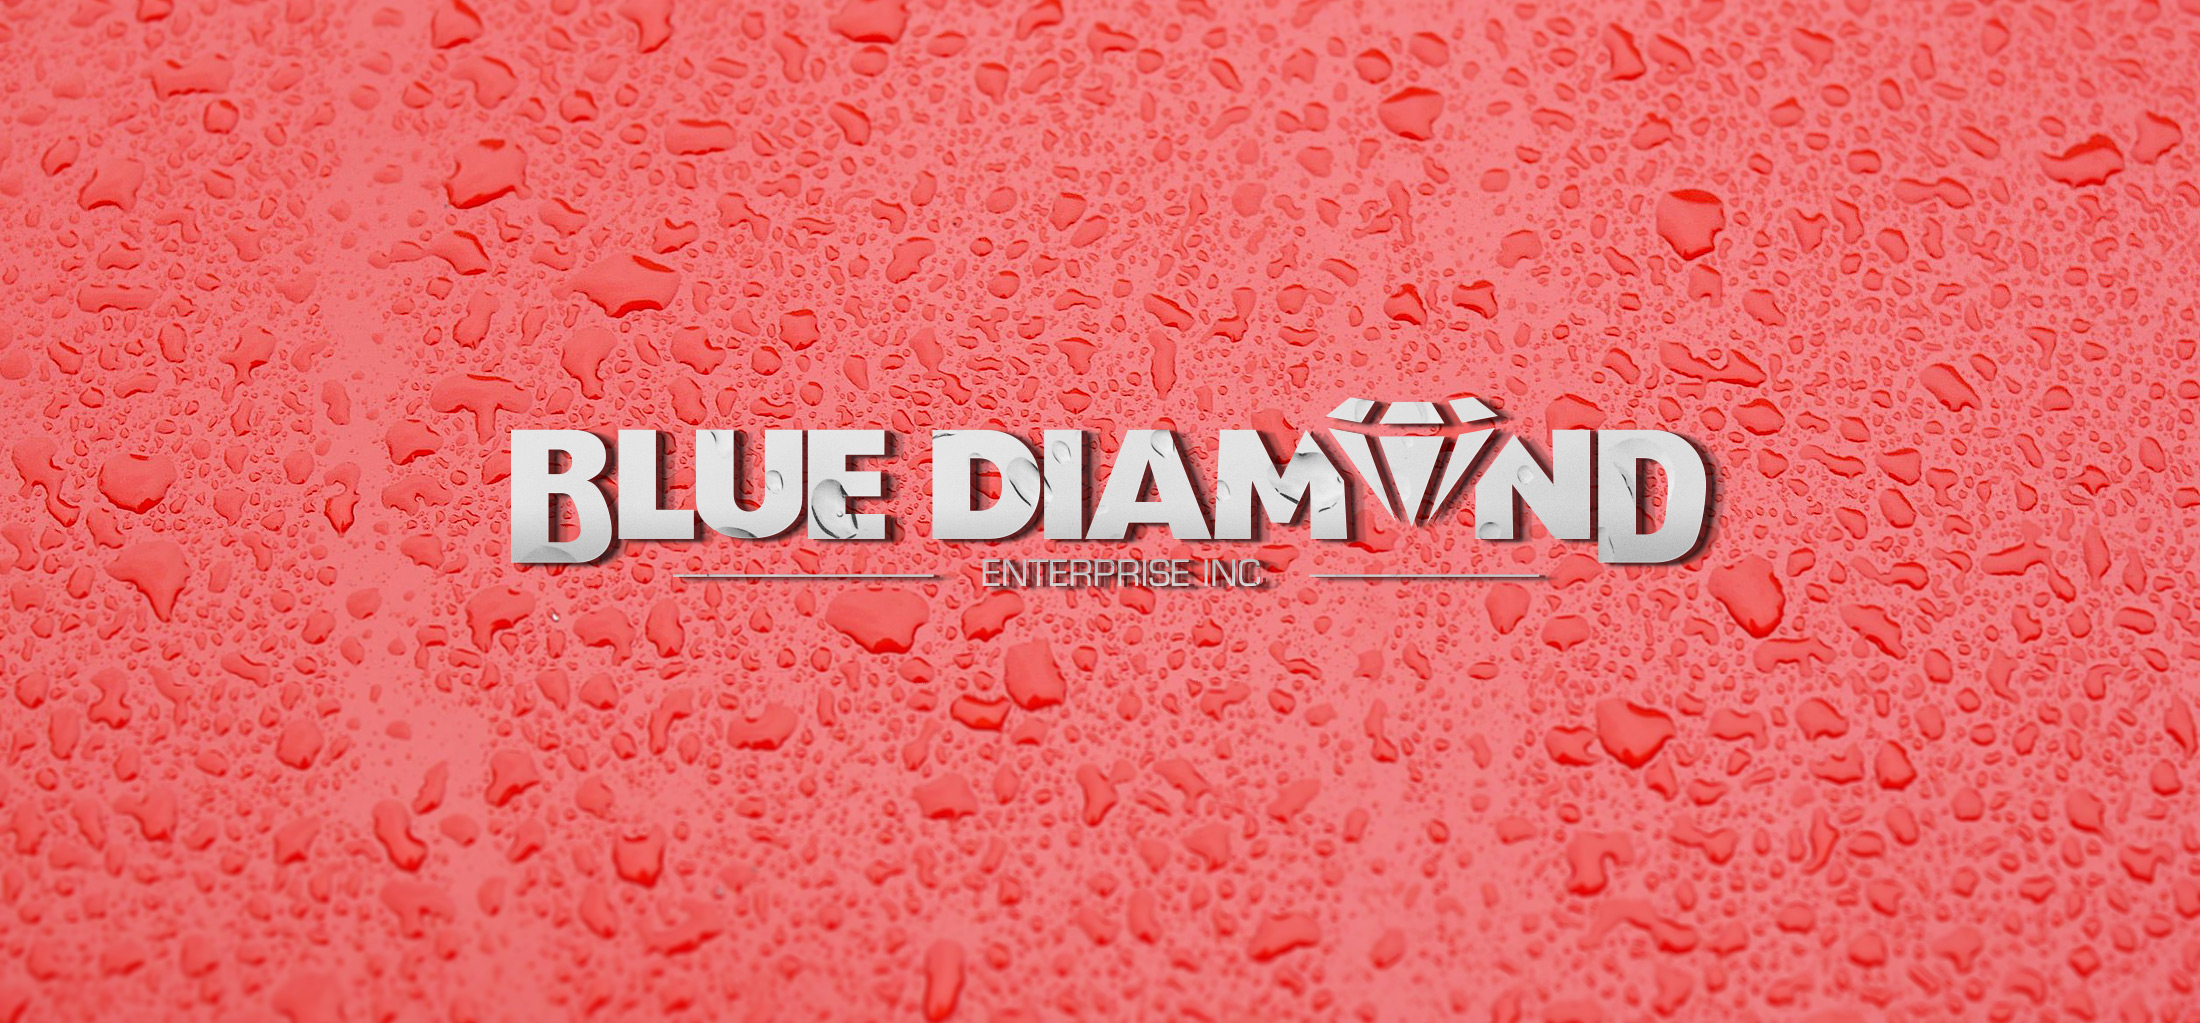 Blue Diamond Enterprise Branding Mockup